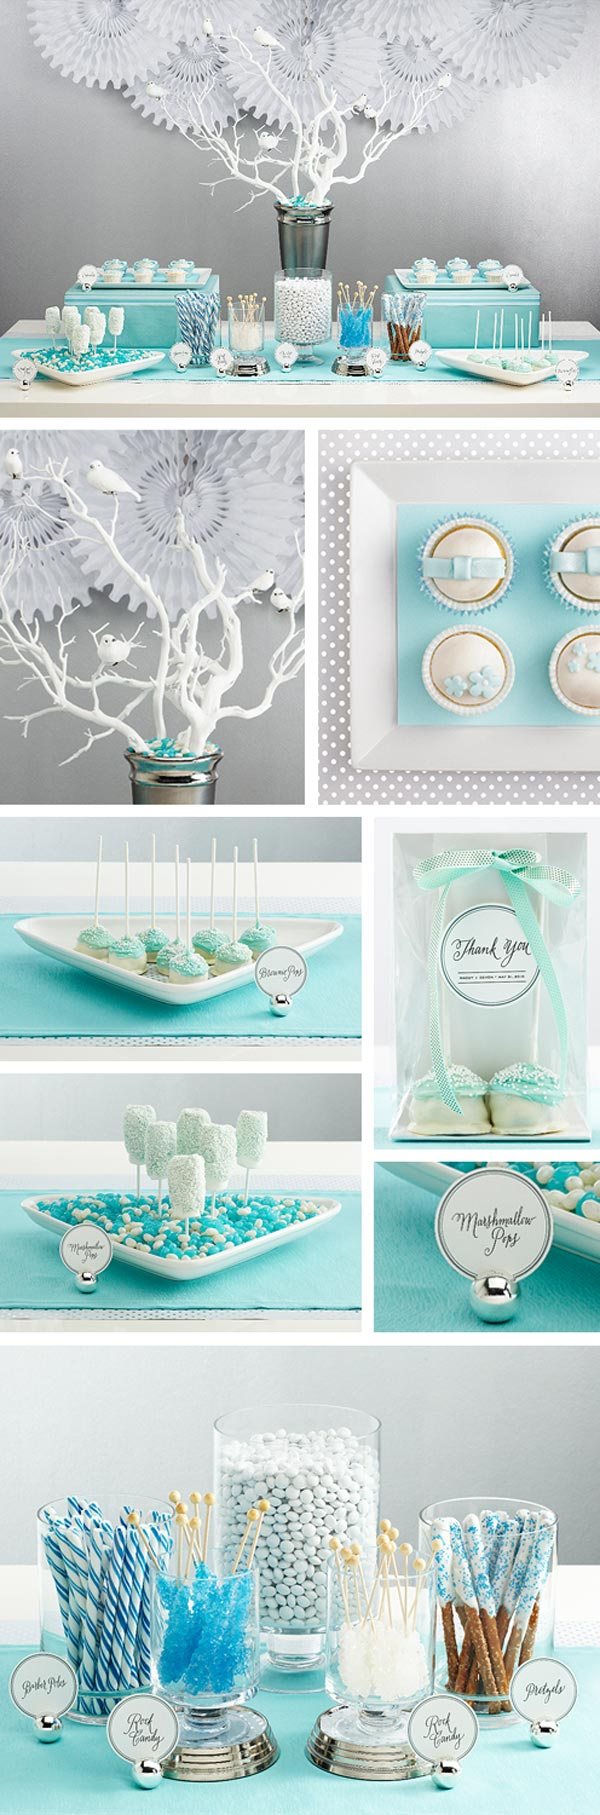 baby shower_ decor_ideas_boy girl (2)